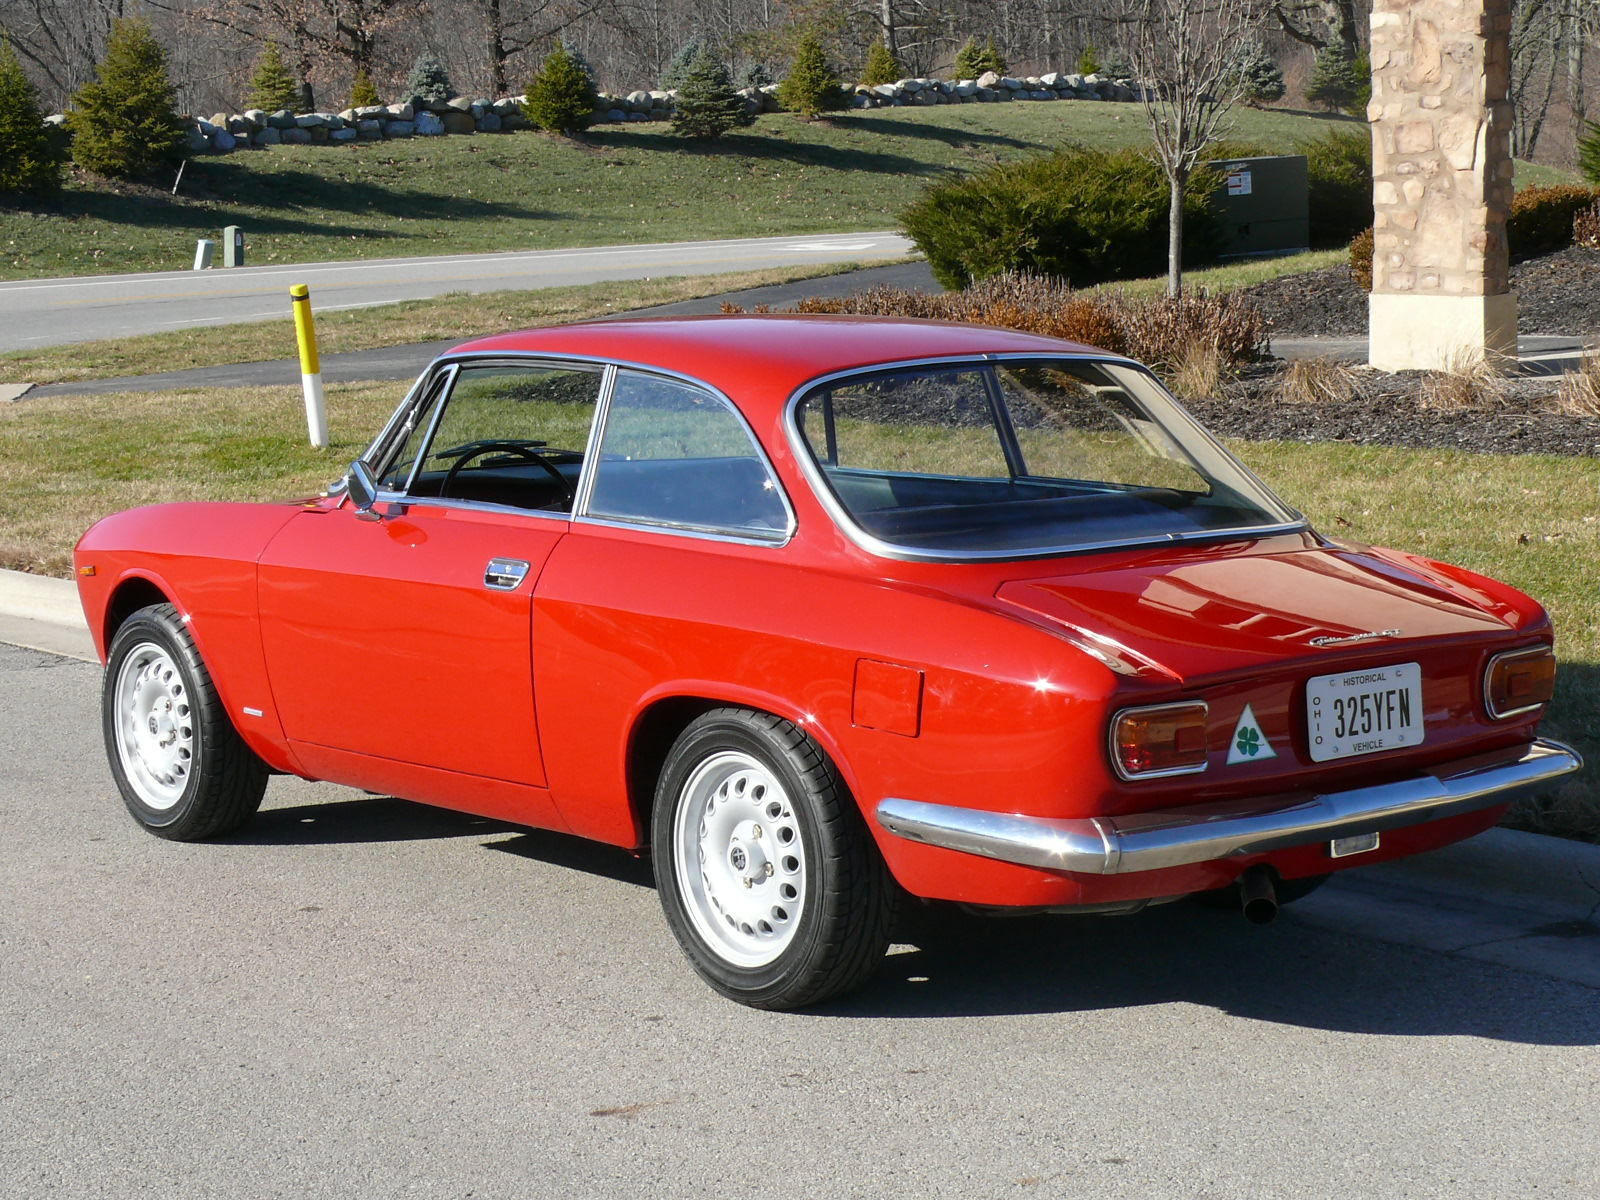 1966 ALFA ROMEO GUILIA SPRINT GTV STEPNOSE.. AS NEW